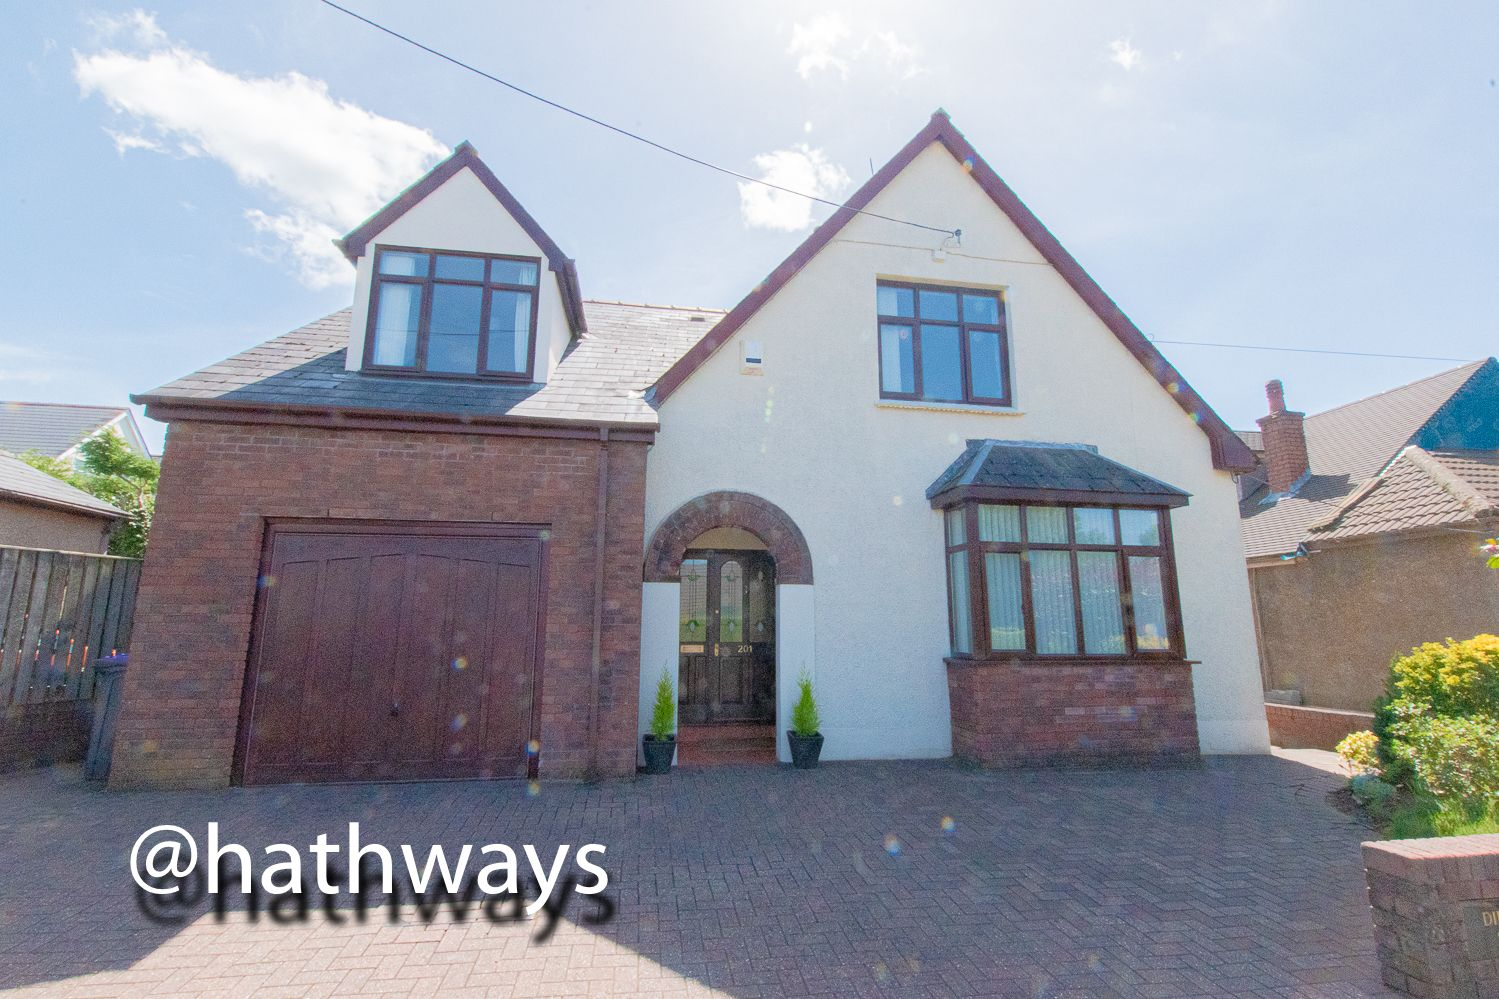 4 bed house for sale in Ashford Close South 59